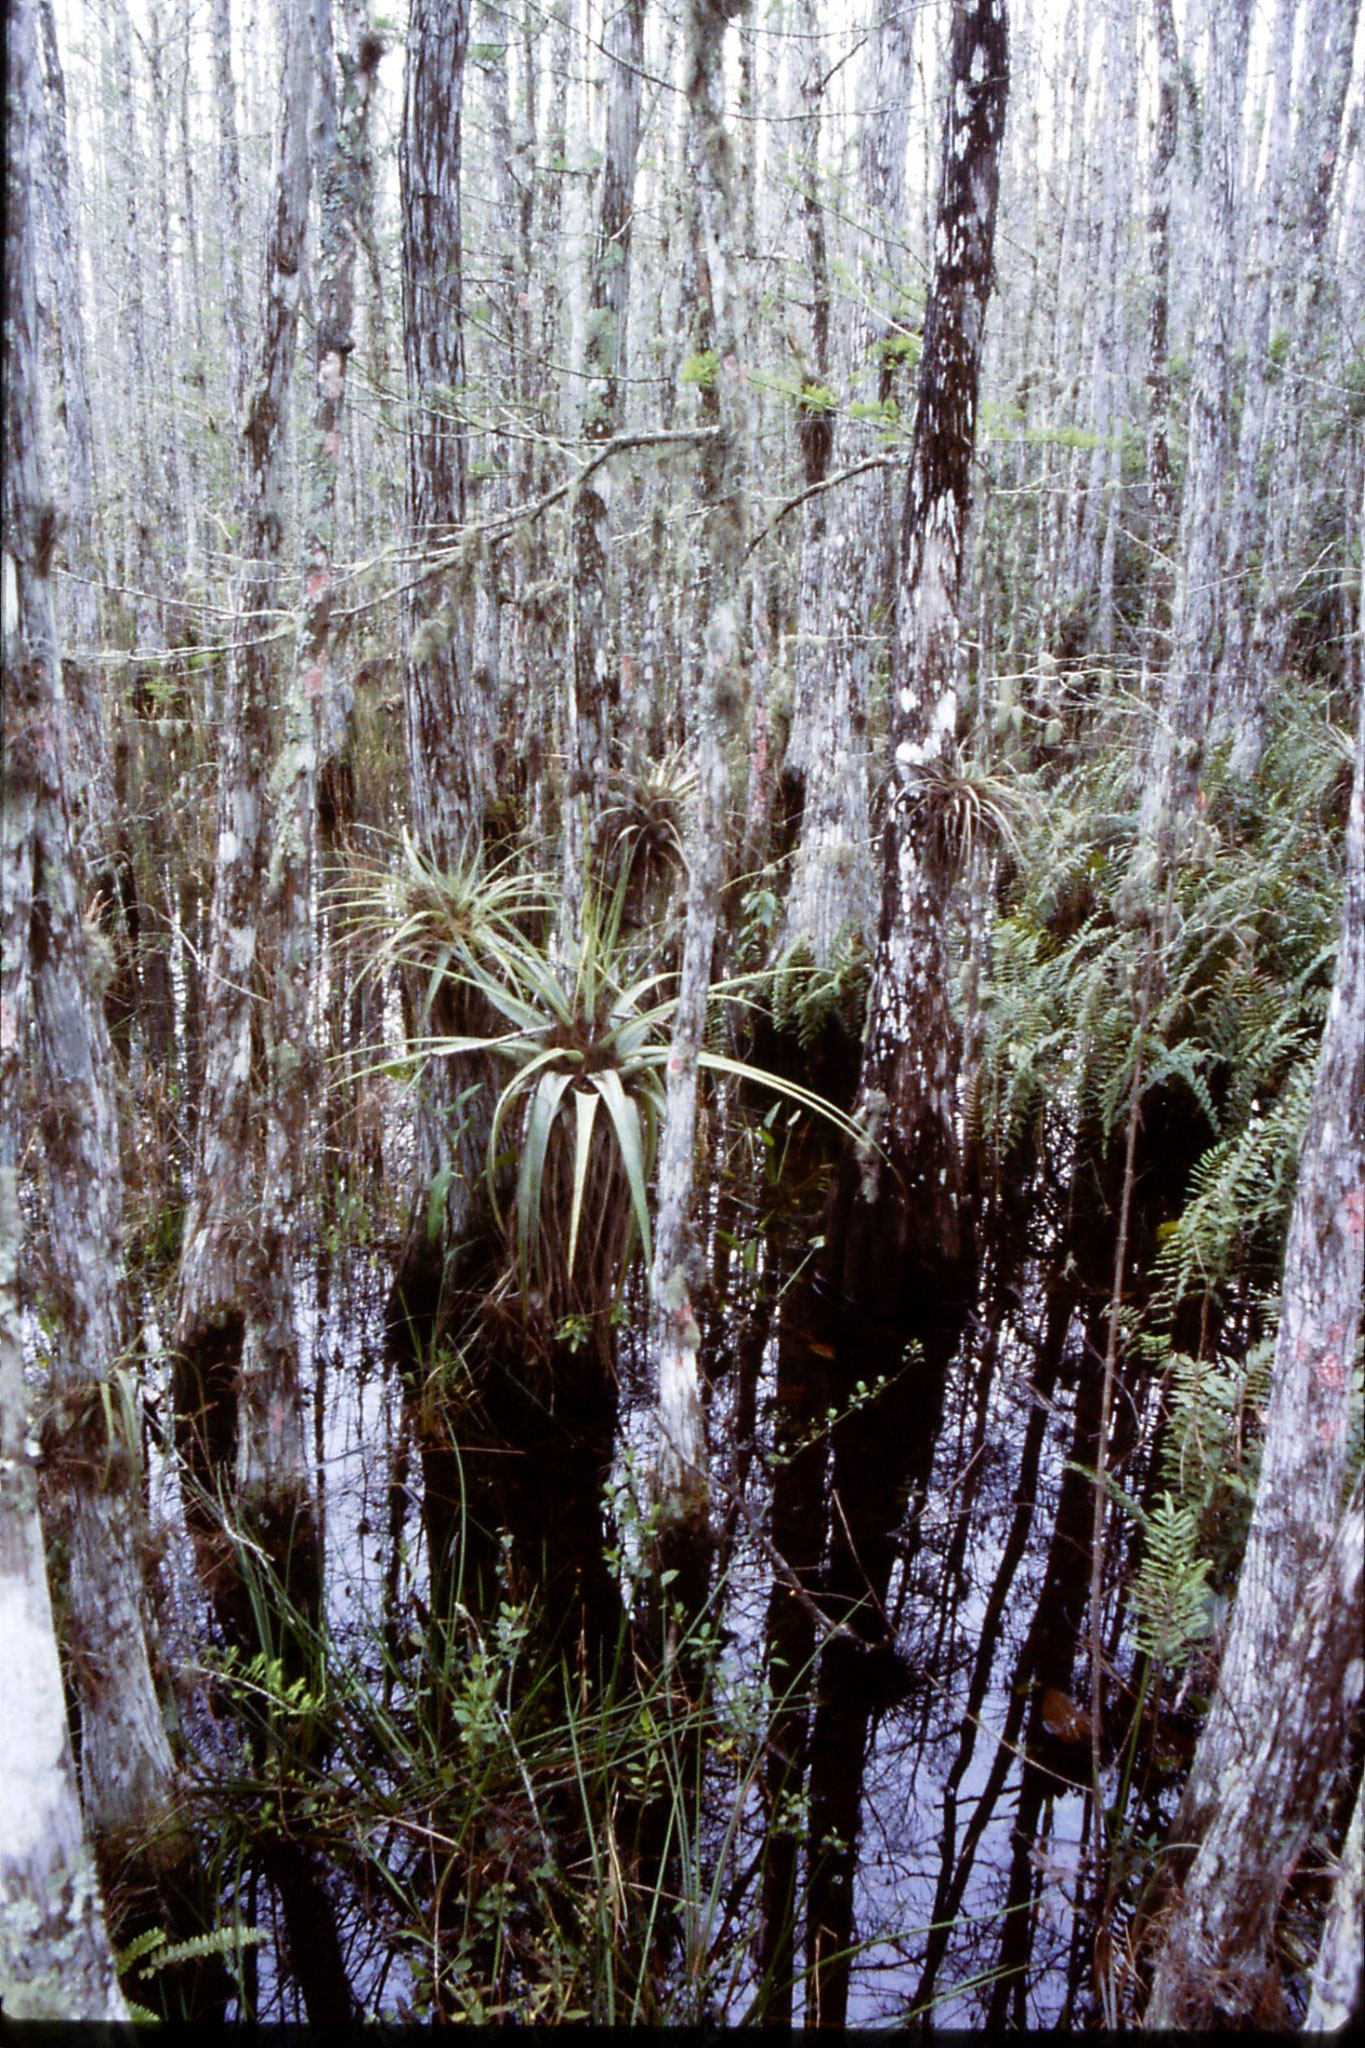 25/2/1991: 16: Corkscrew Swamp